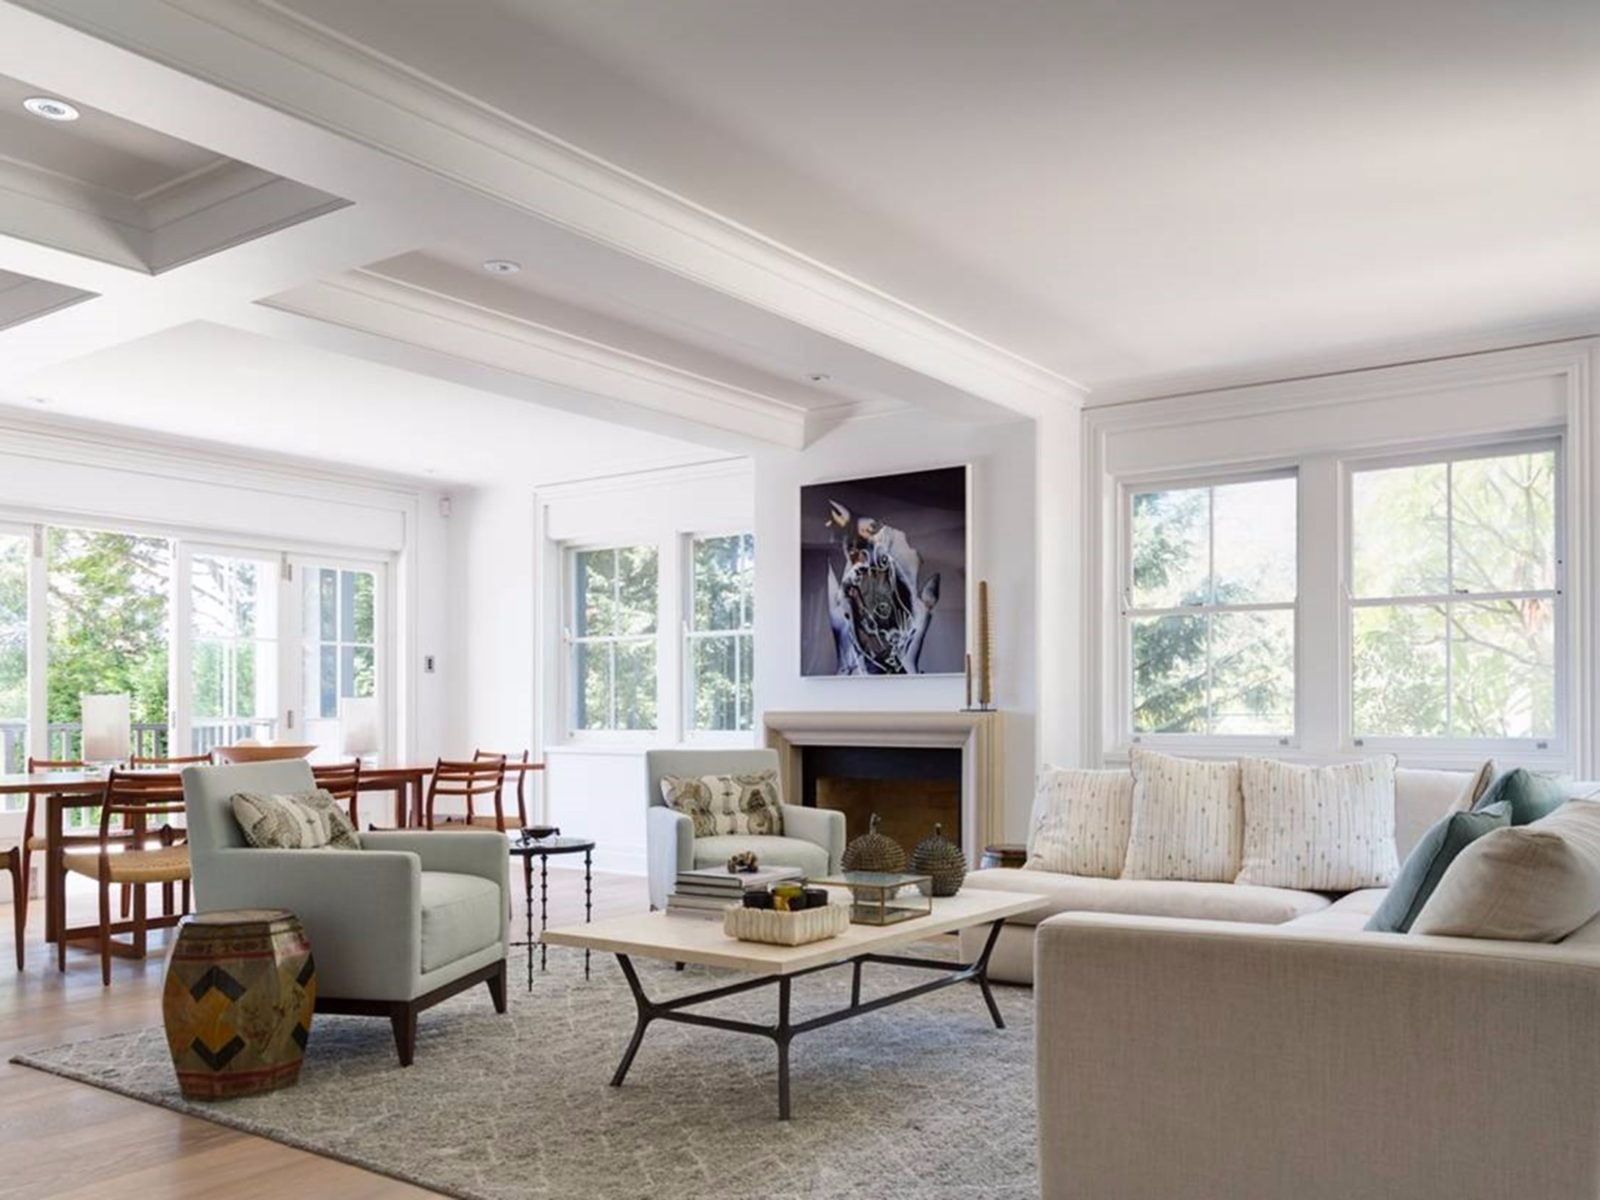 Bright living room surrounded by windows